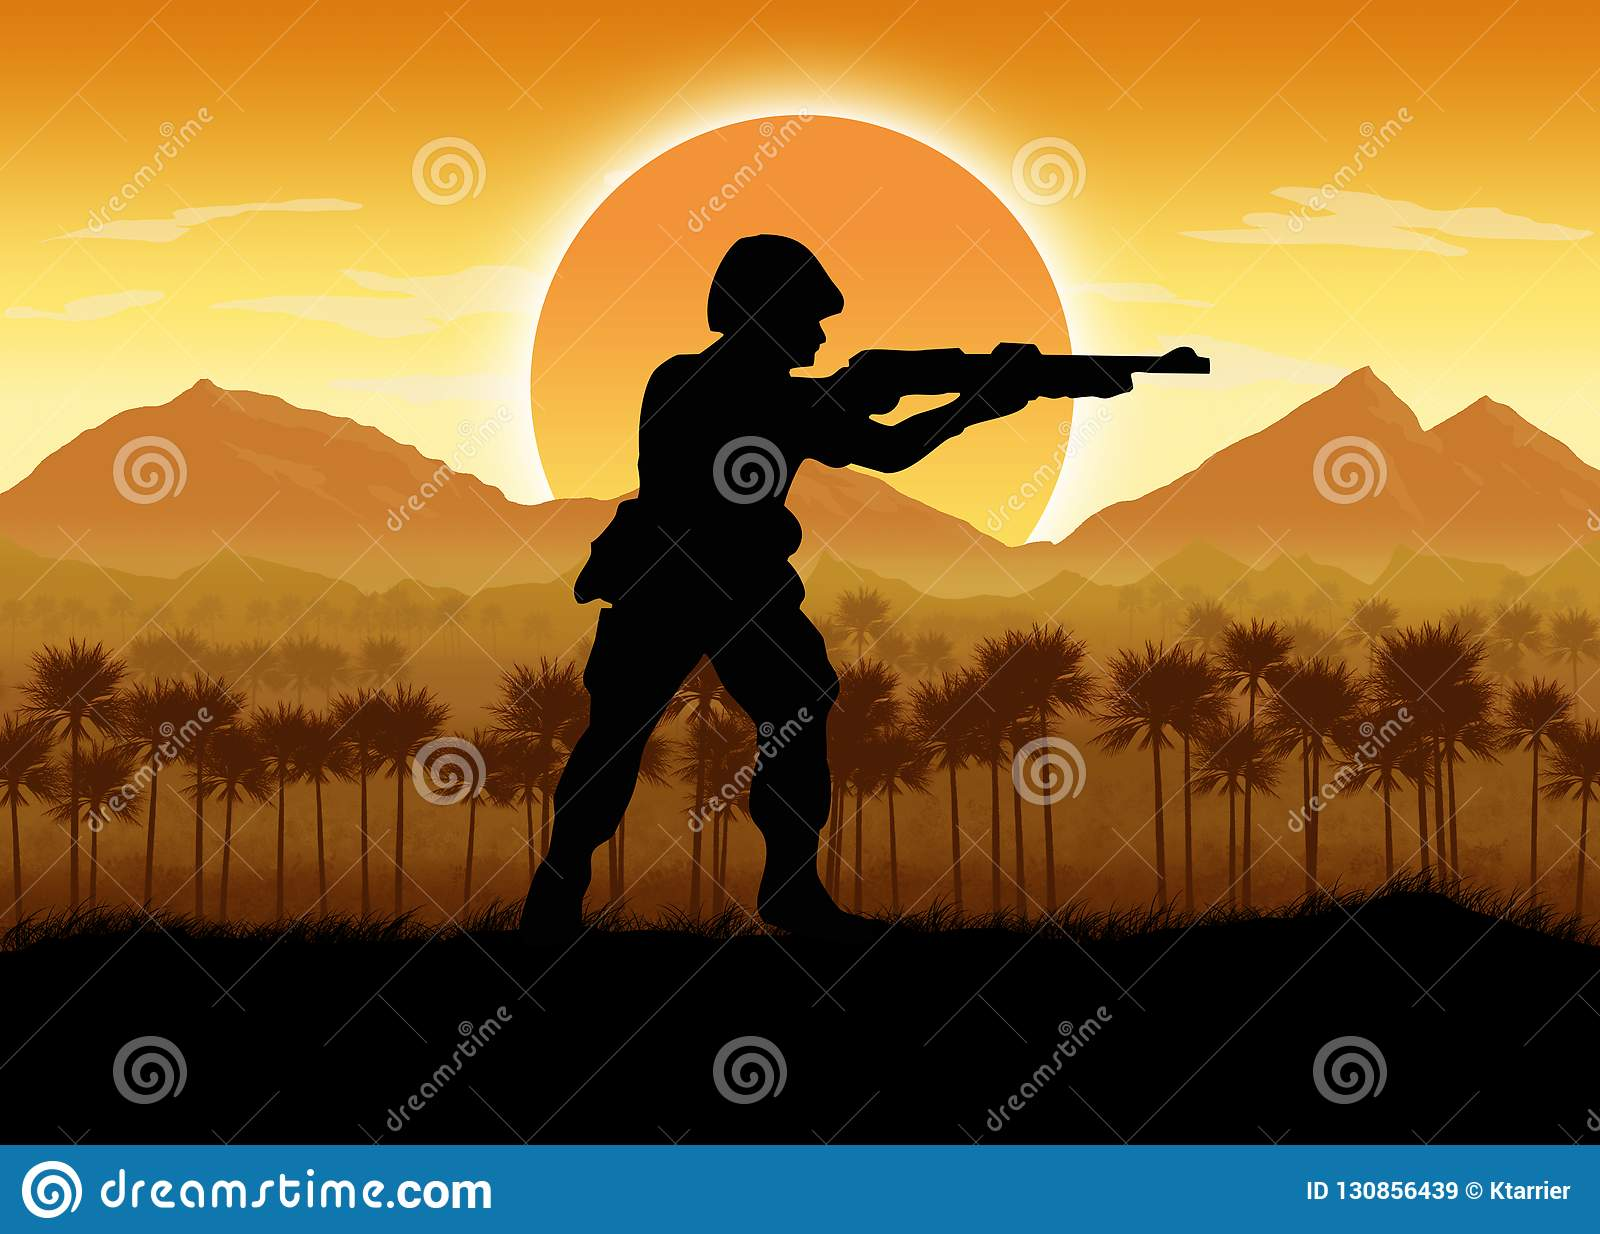 American Dream Circa 1960 >> Military Forces In A Jungle Situation Stock Illustration